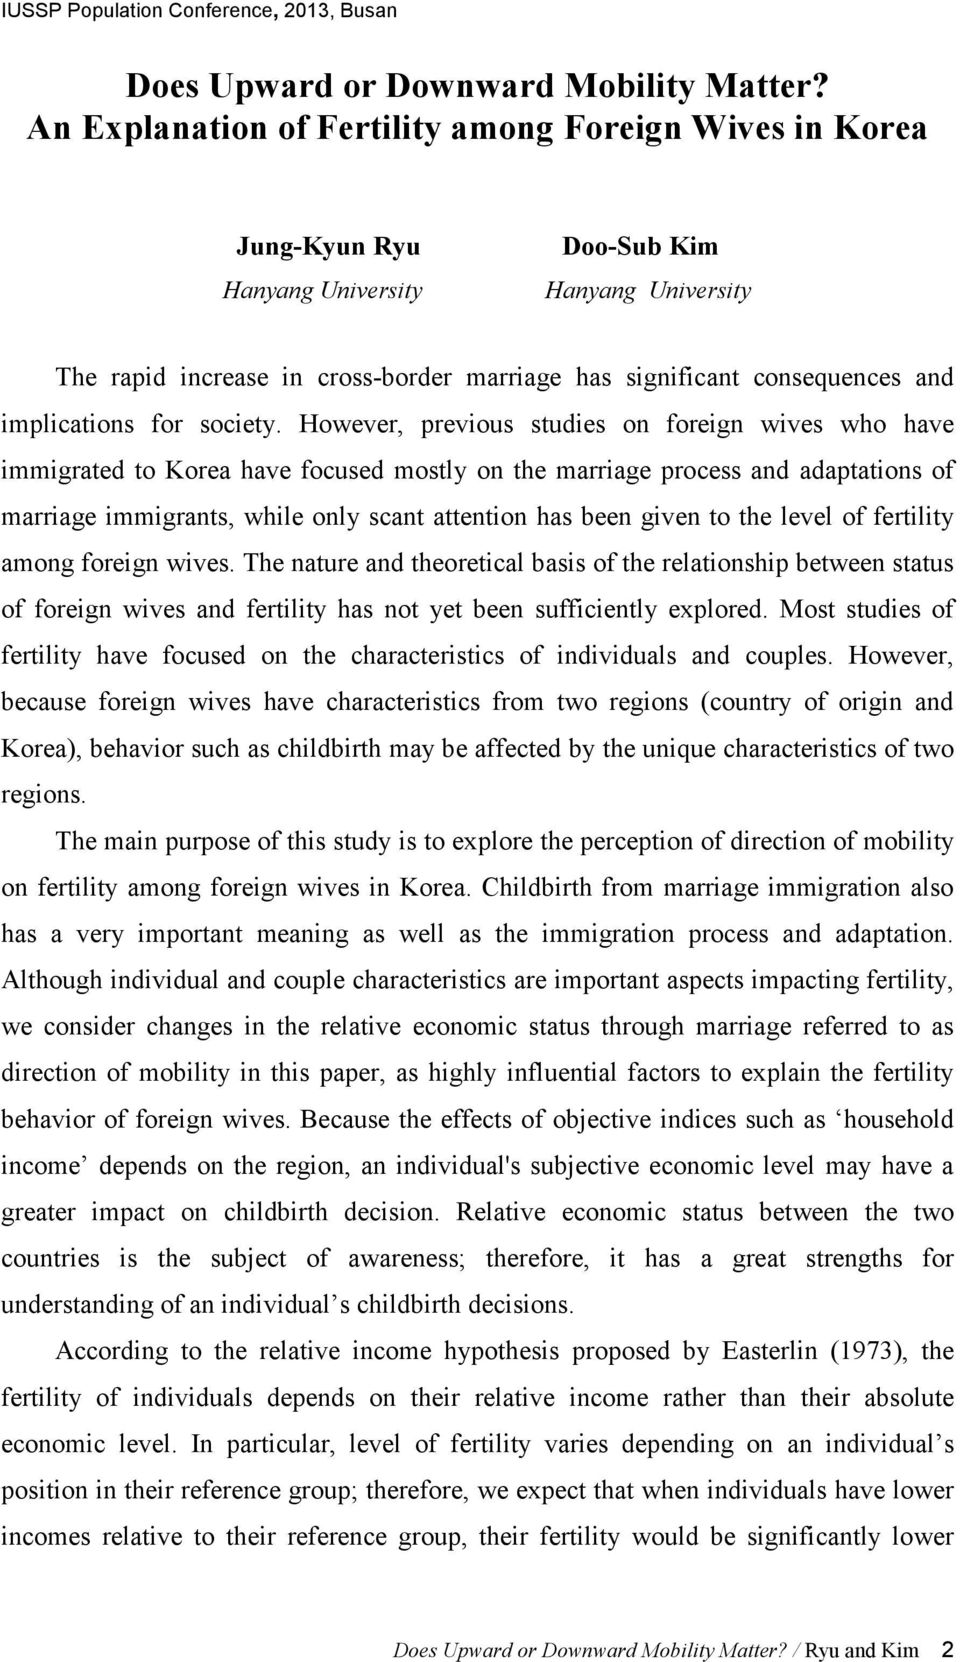 However, previous studies on foreign wives who have immigrated to Korea have focused mostly on the marriage process and adaptations of marriage immigrants, while only scant attention has been given